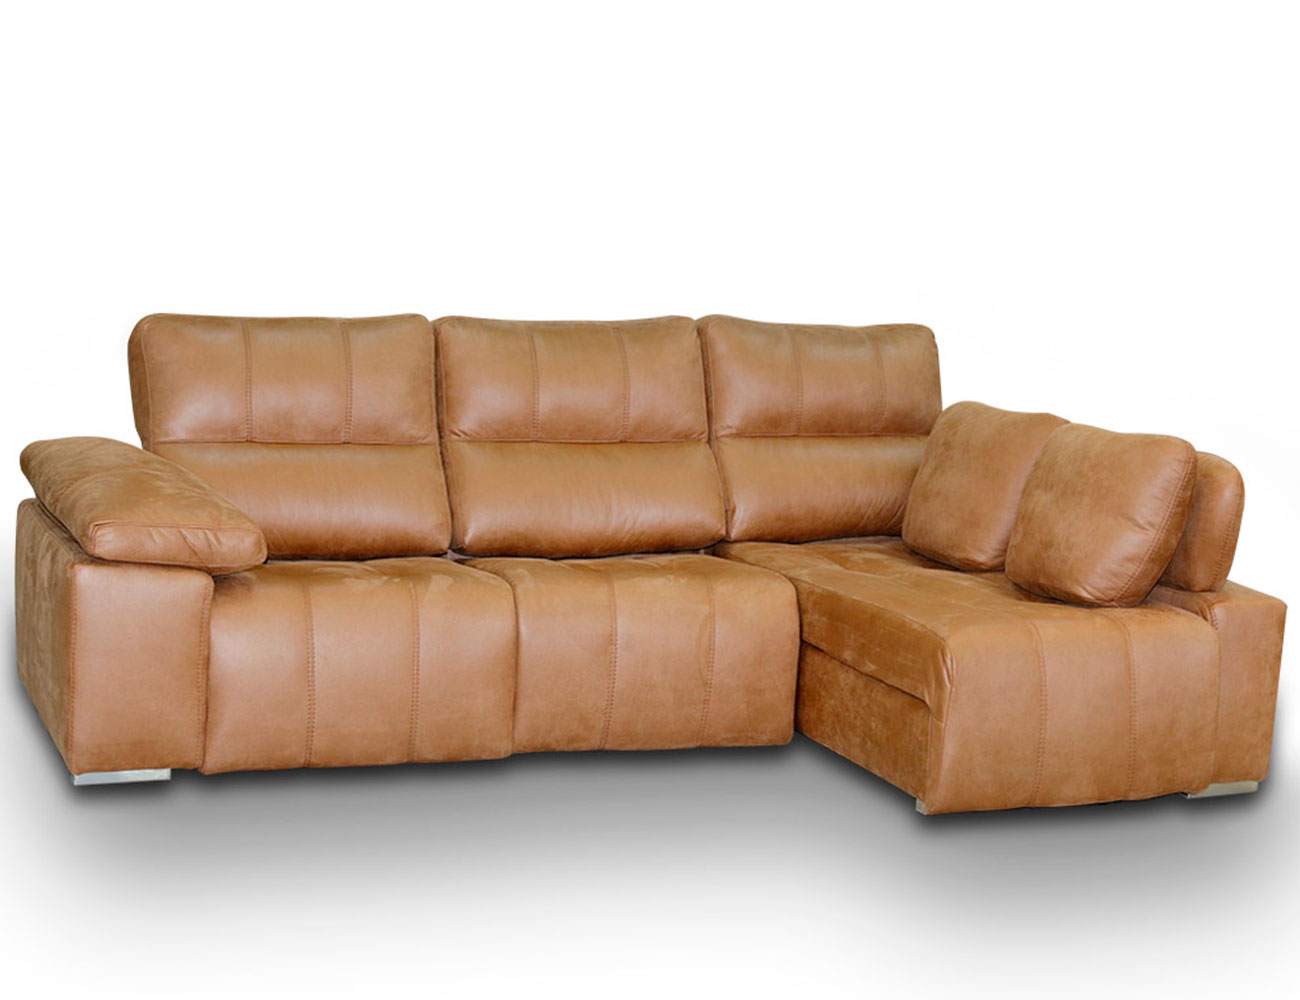 Sofa chaiselongue relax 2 motores anti manchas552